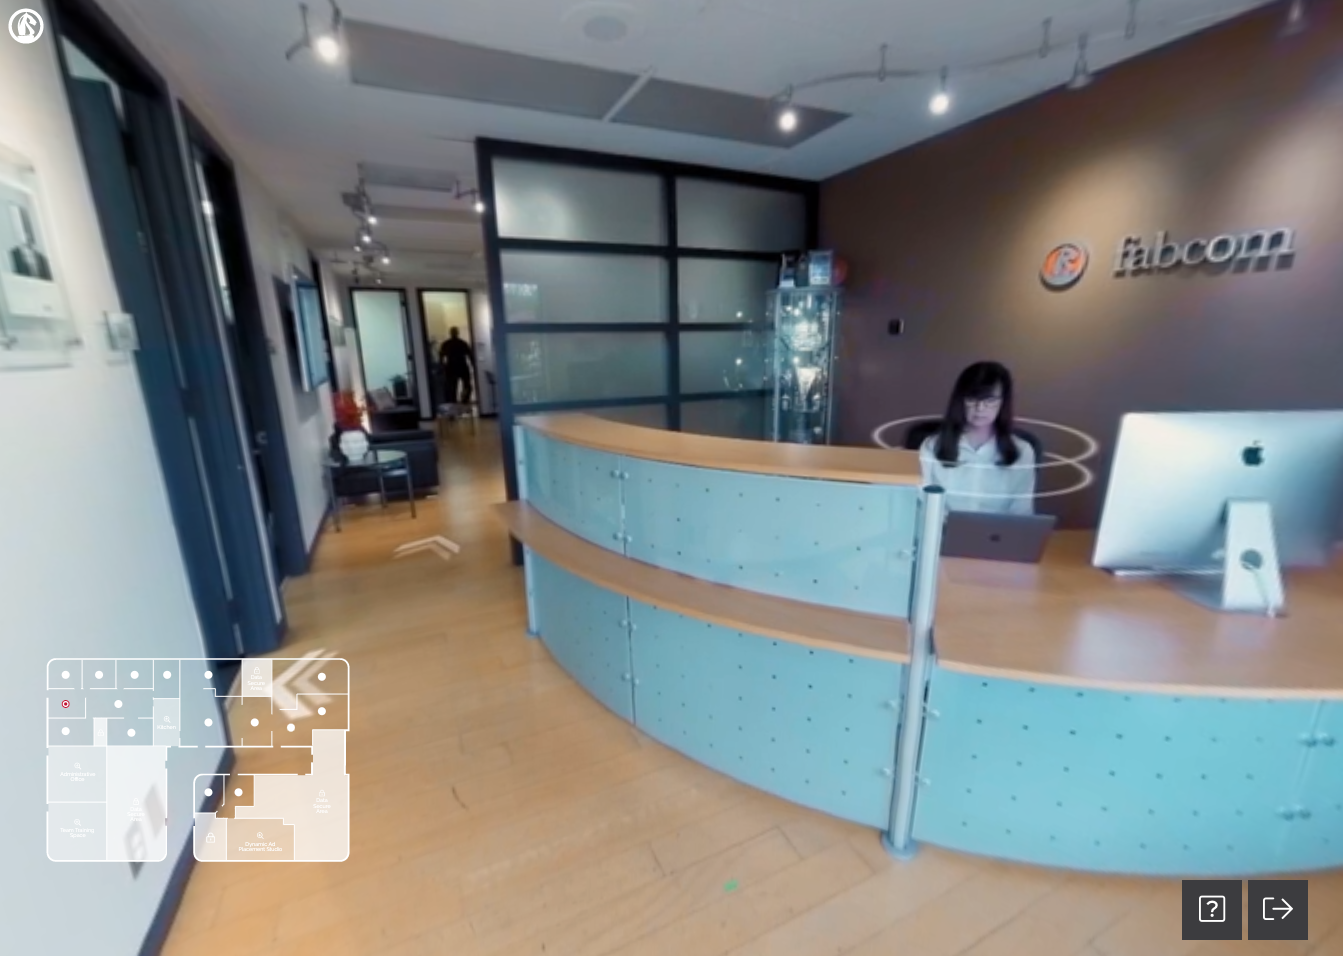 fabcom virtual tour